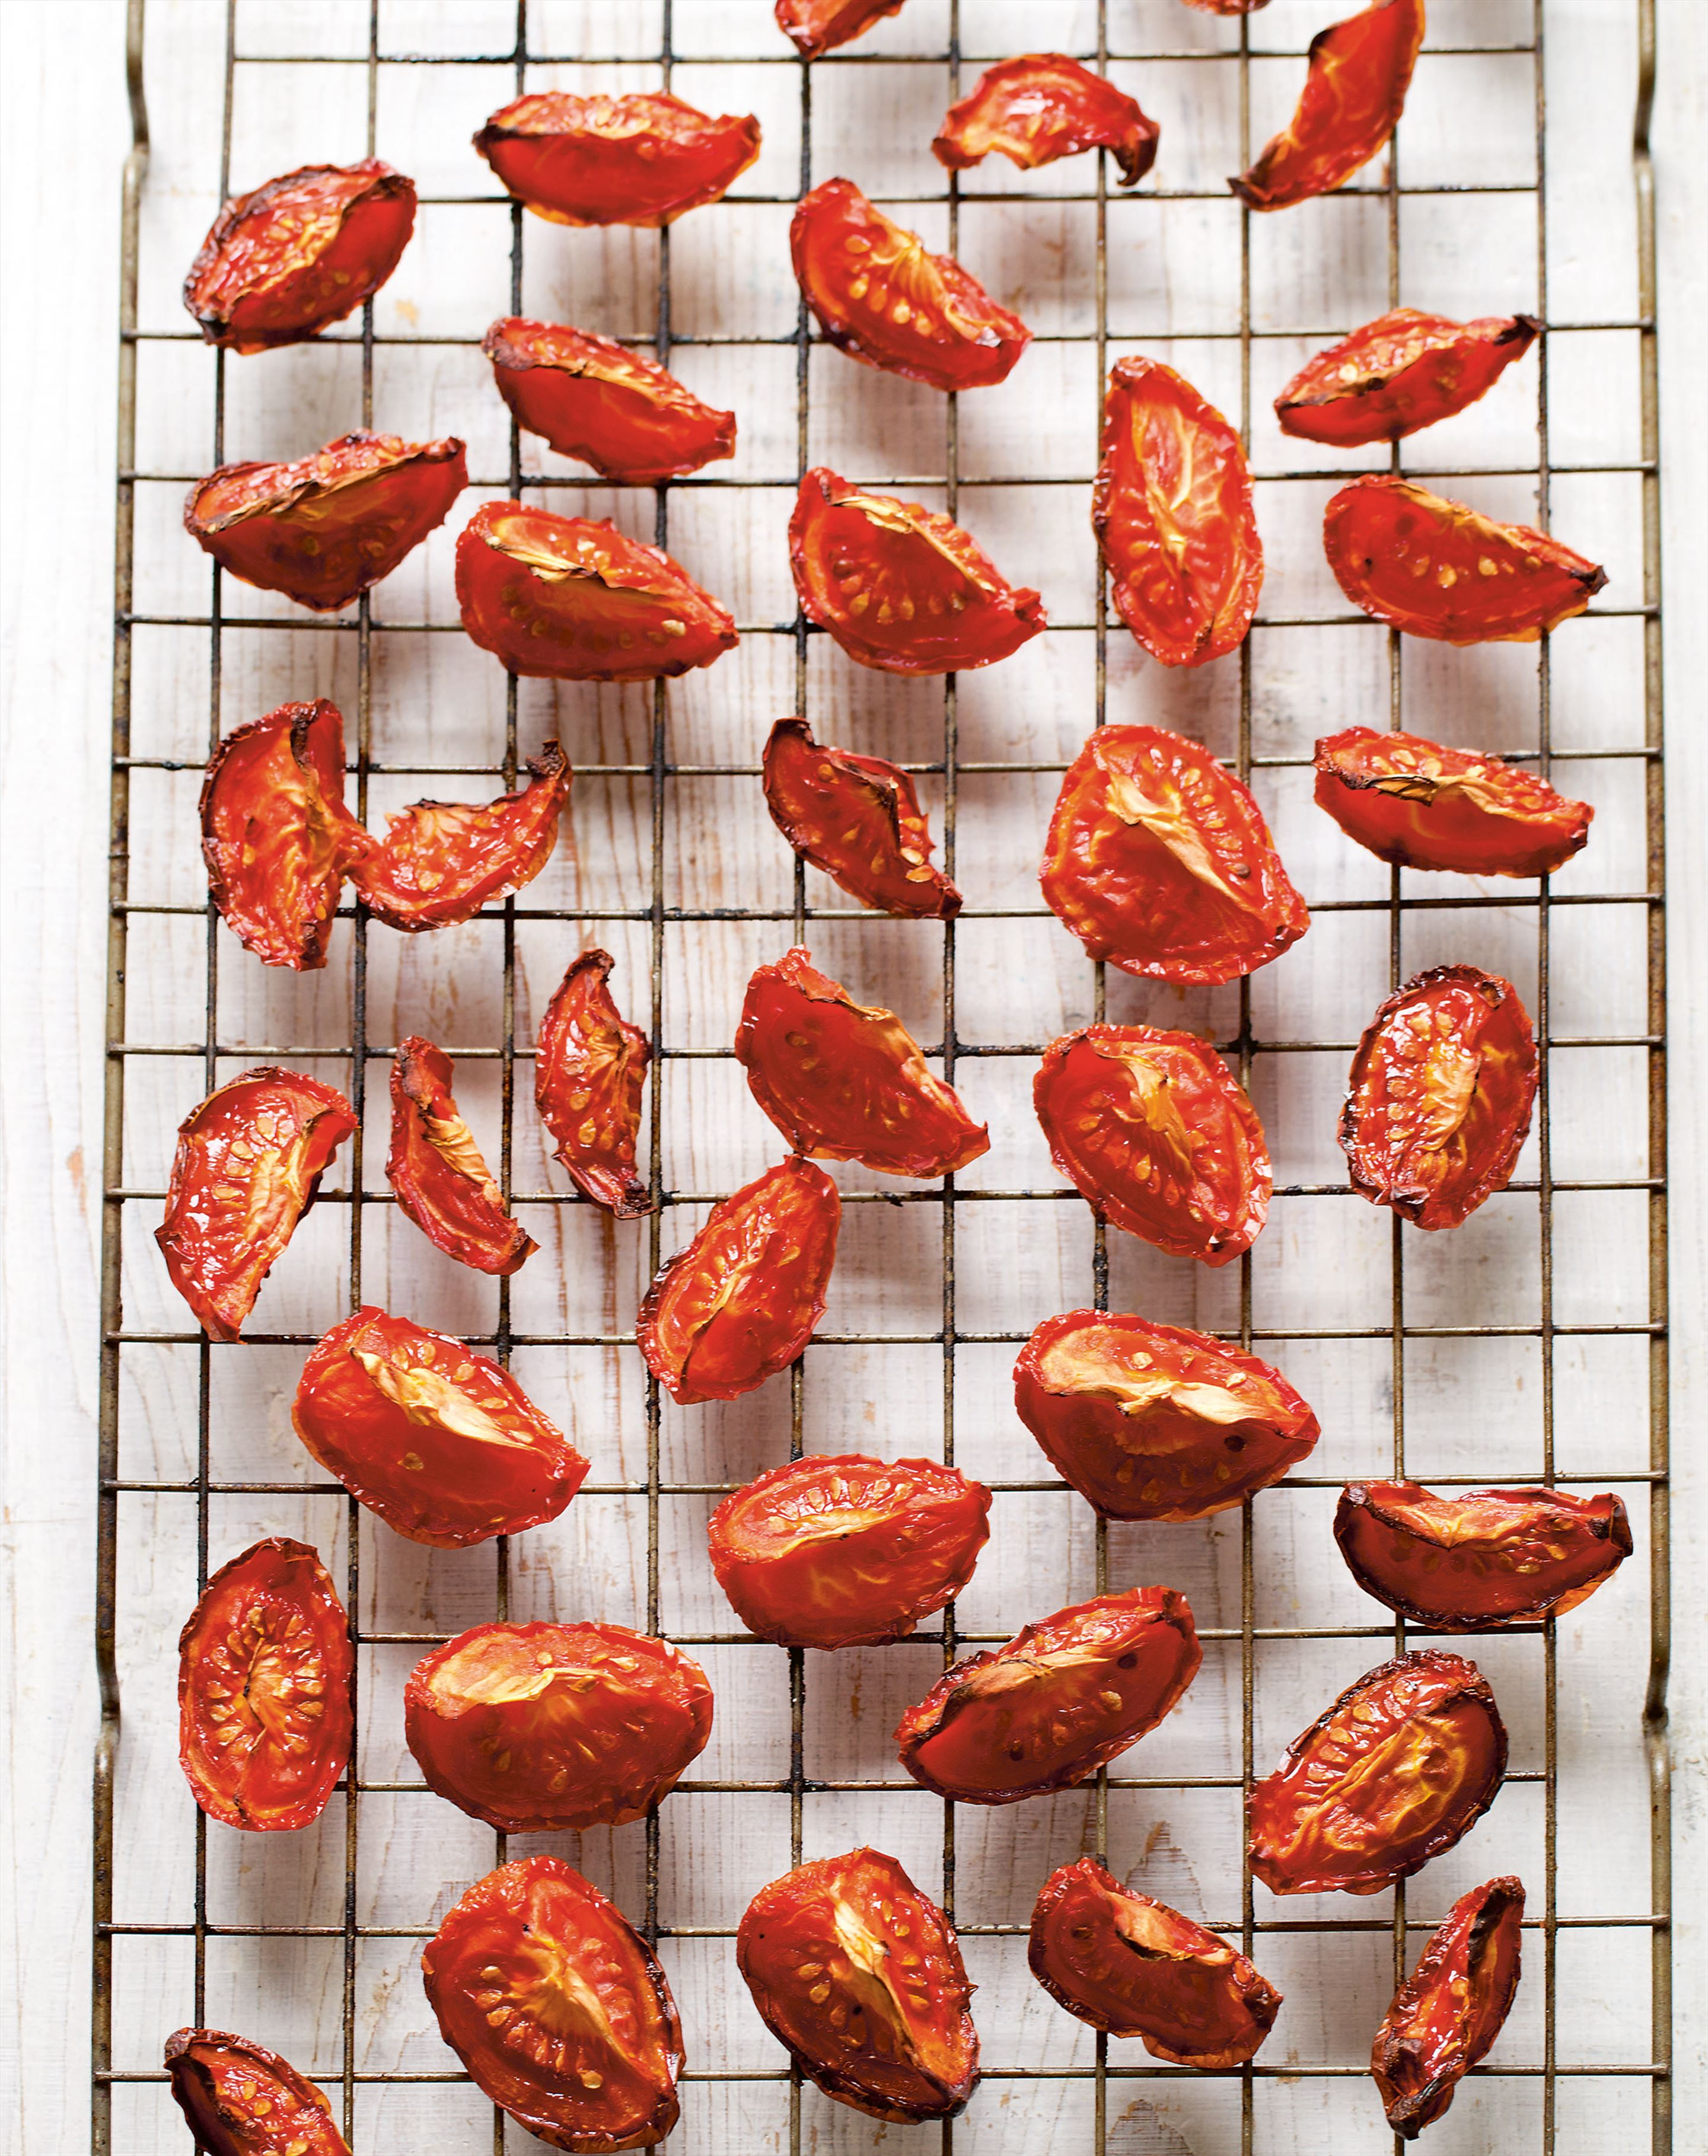 Oven-dried tomatoes in garlic oil